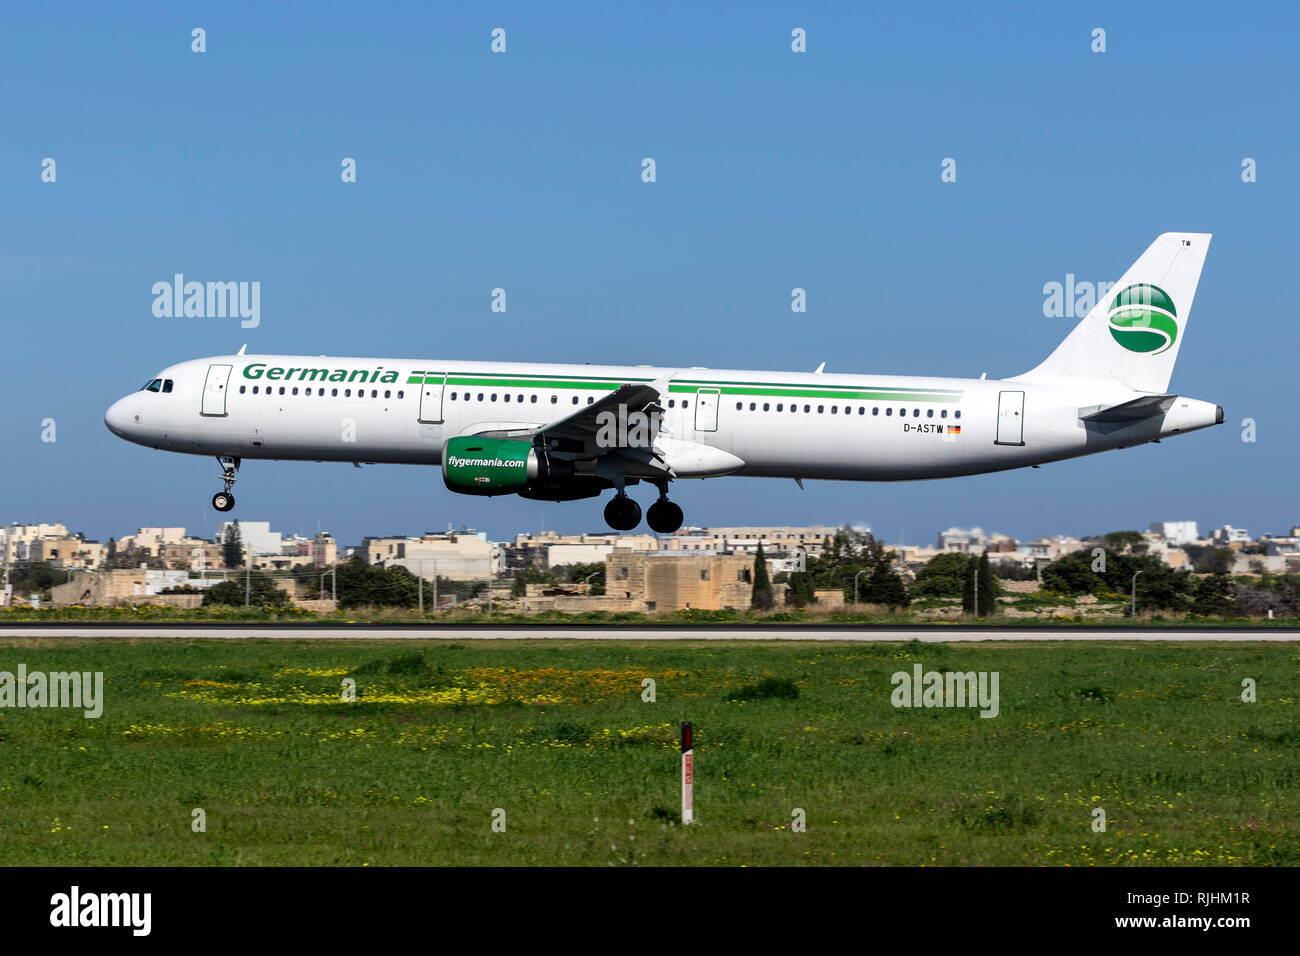 Germania Airbus A321-211 (REG: D-ASTW) landing runway 31, operating the last flight to MLA before going bankrupt. - Stock Image